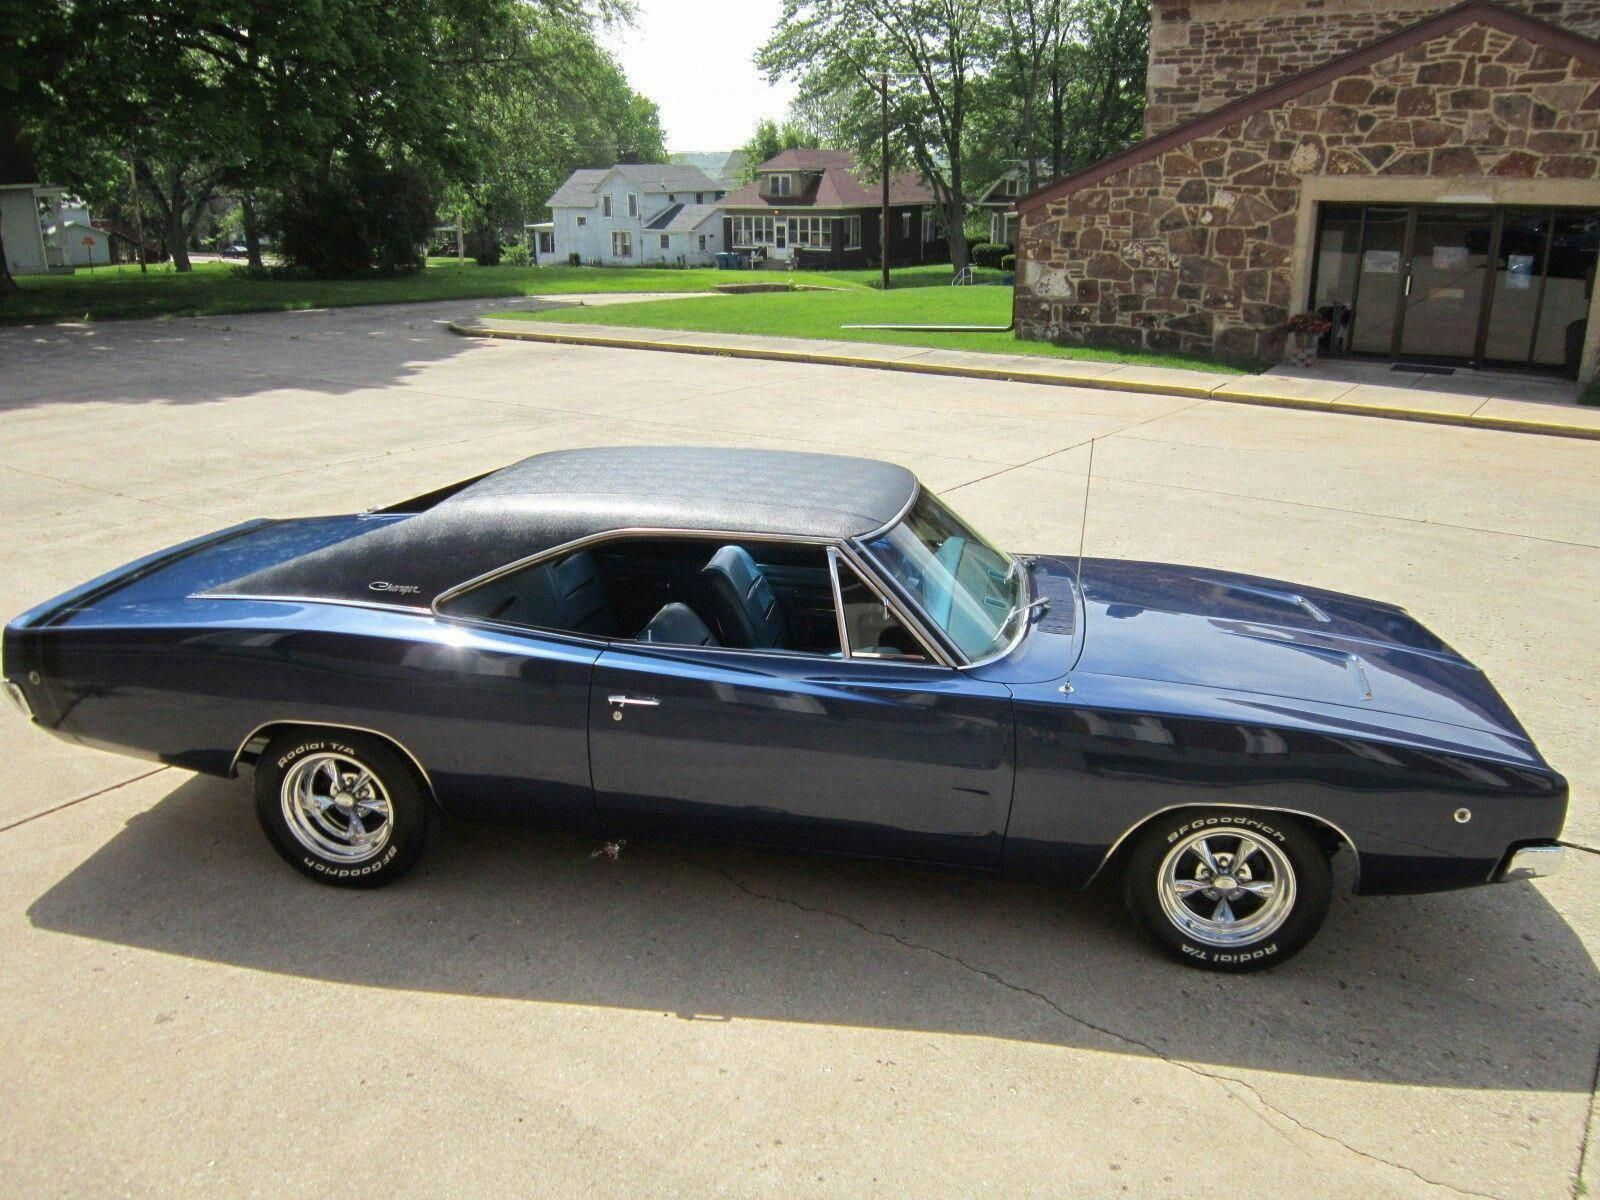 Dodge Charger Classic Cars Gumtree Dodgechargerclassiccars With